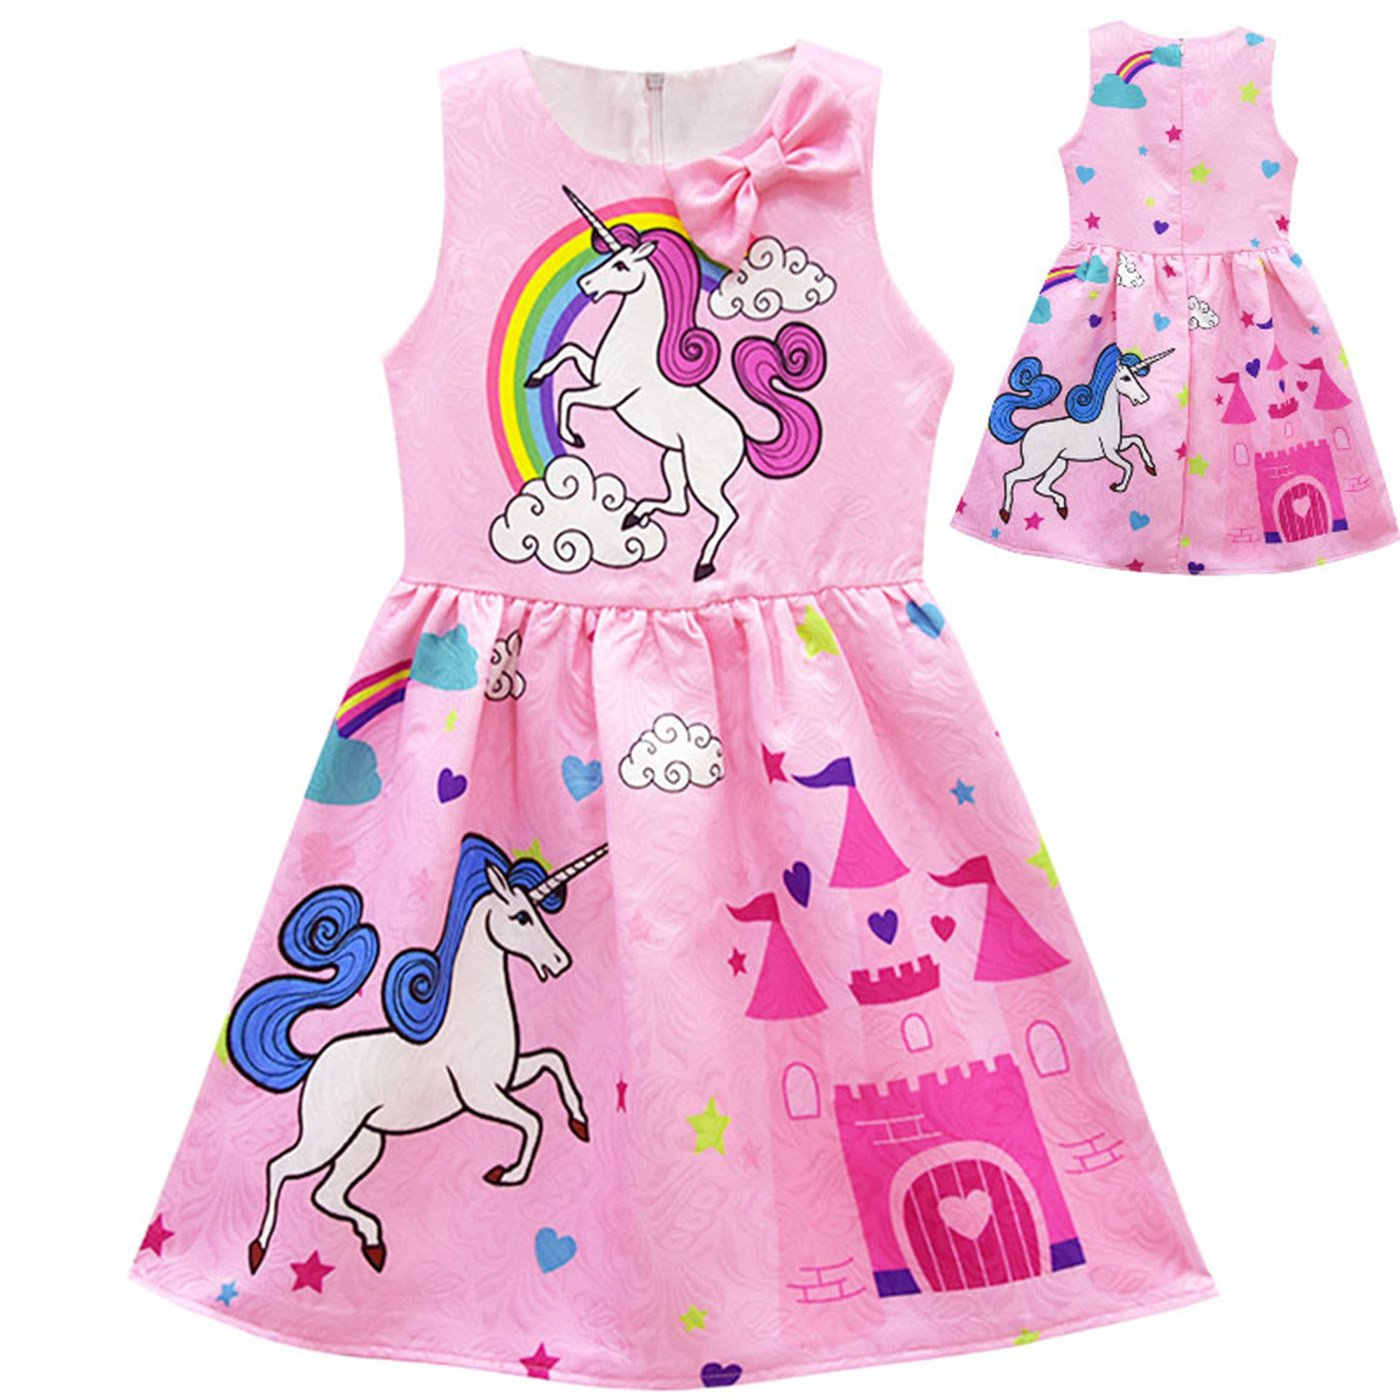 Tiaoqi Unicorn Party Gifts Dress,Summer Sleeveless Bow Crew Neck Floral Dress (XL, Pink) by Tiaoqi